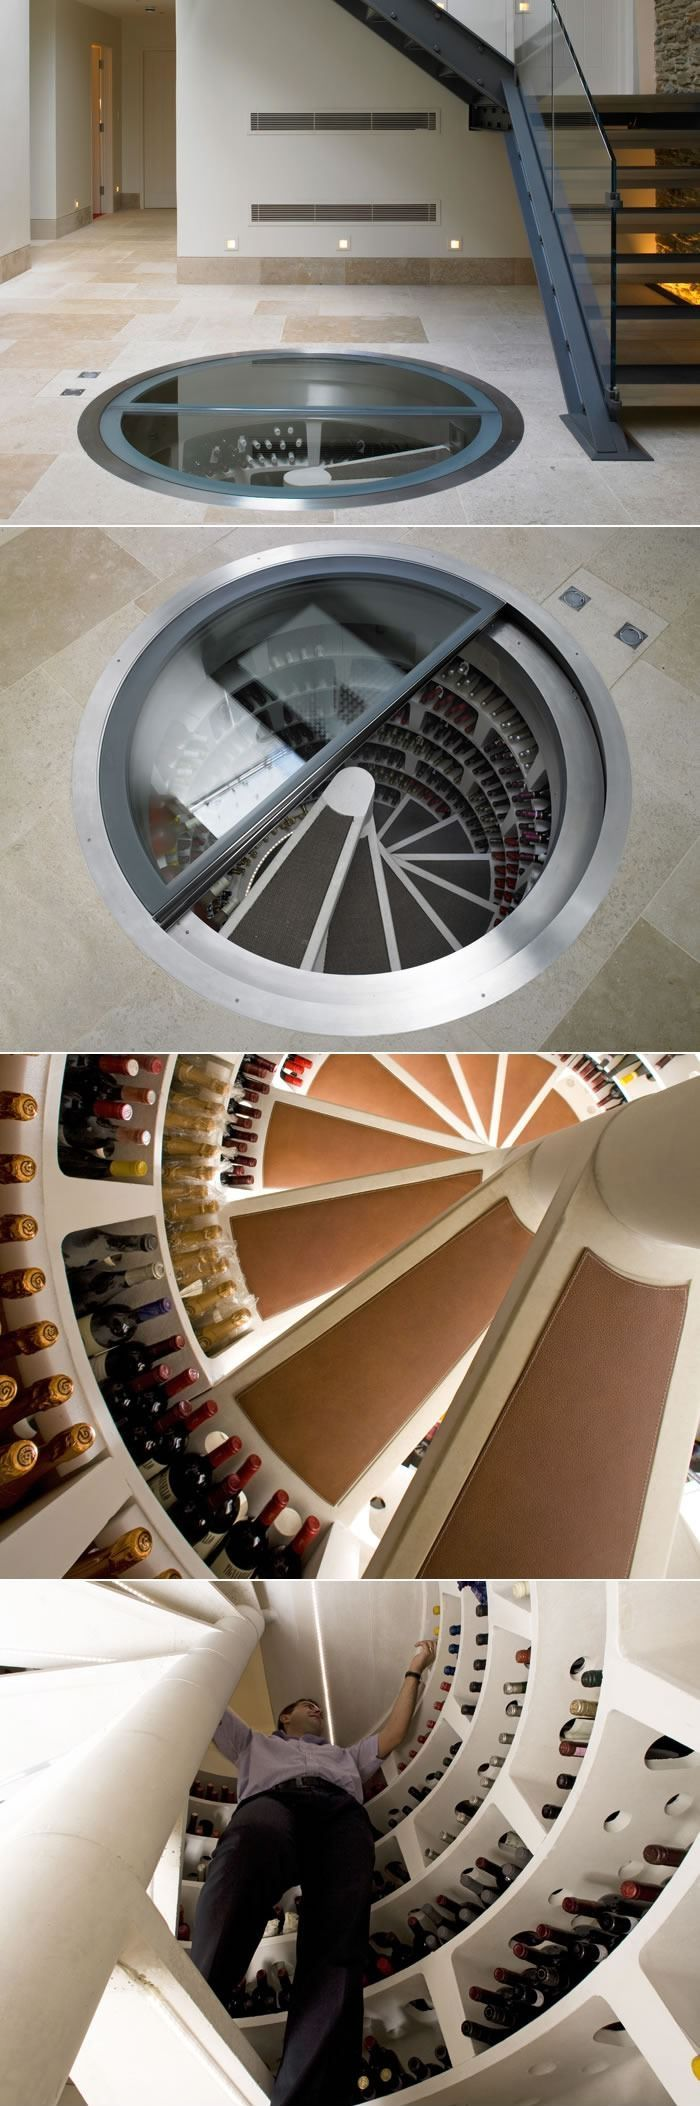 Spiral Wine Cellar -I want this for shoes